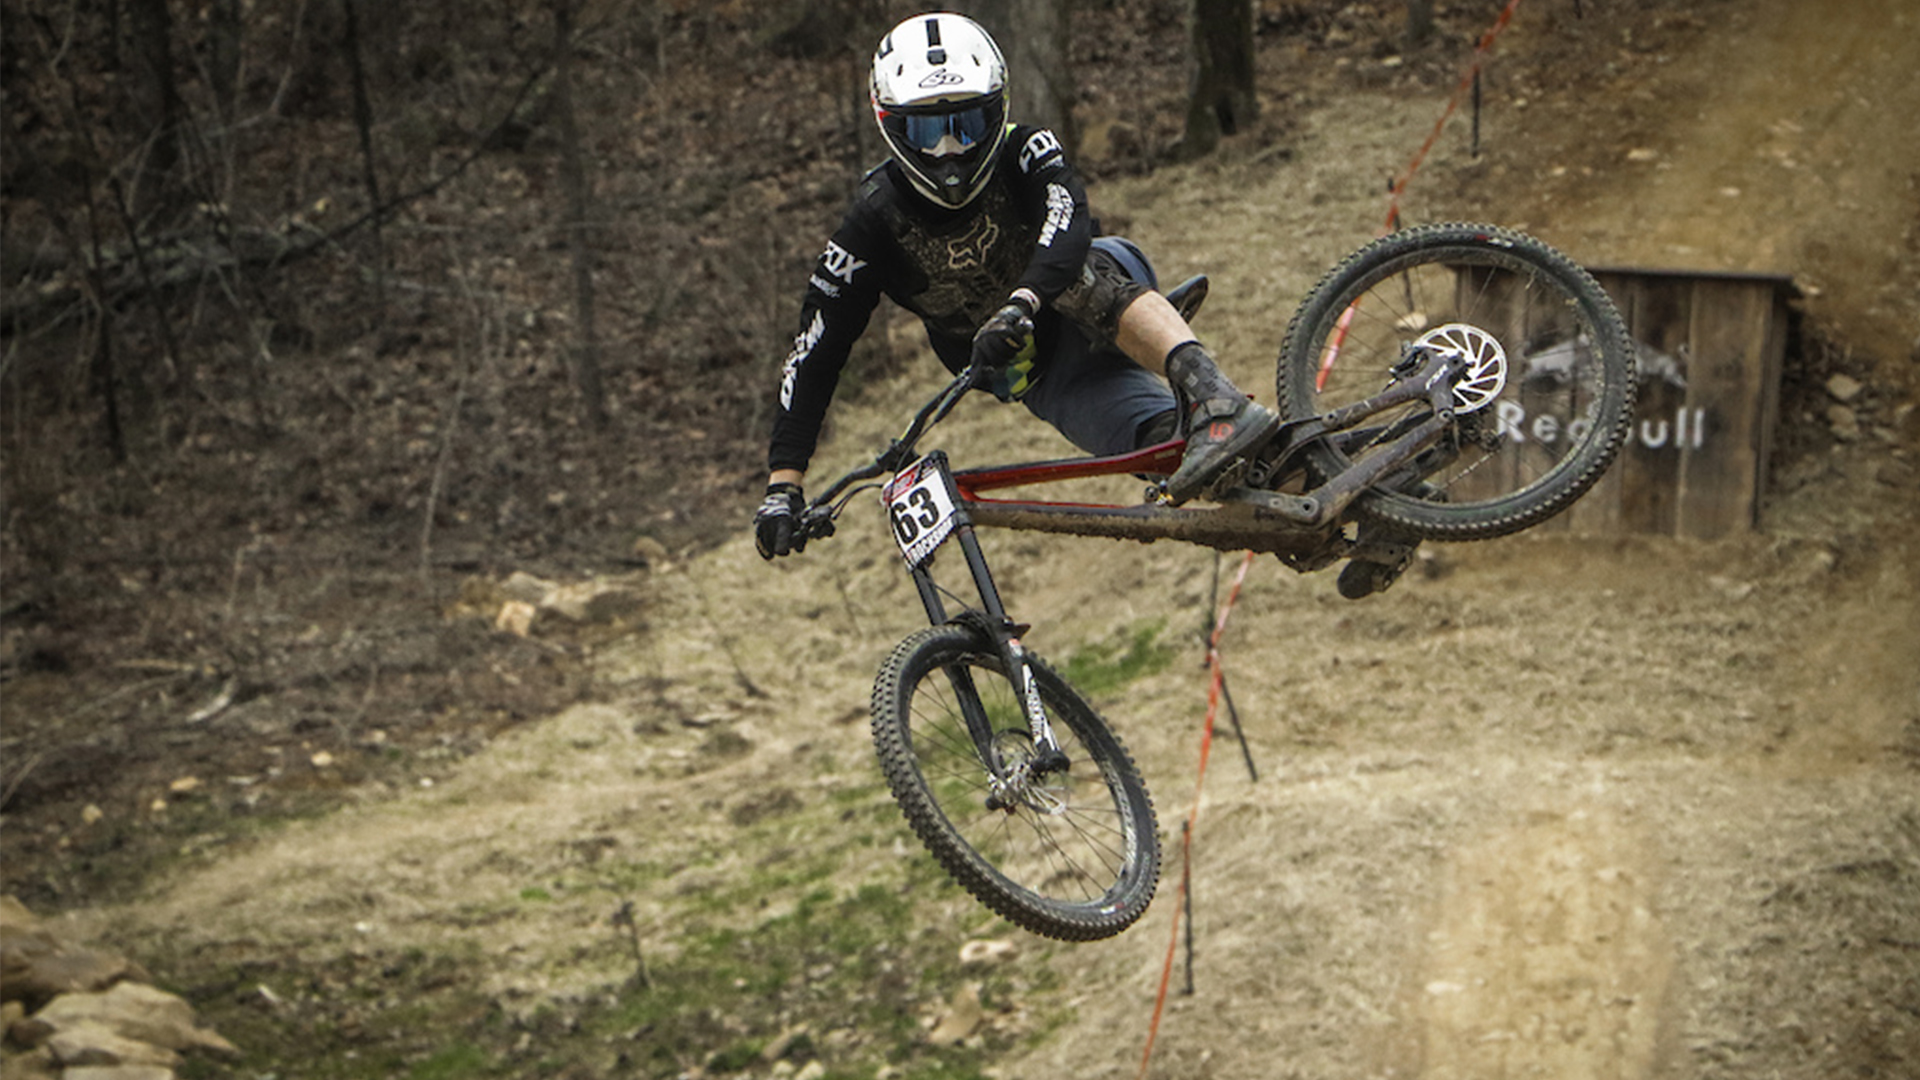 70ea7f029a9 Video: The Rooted DH Team at the Windrock Pro GRT   BIKE Magazine